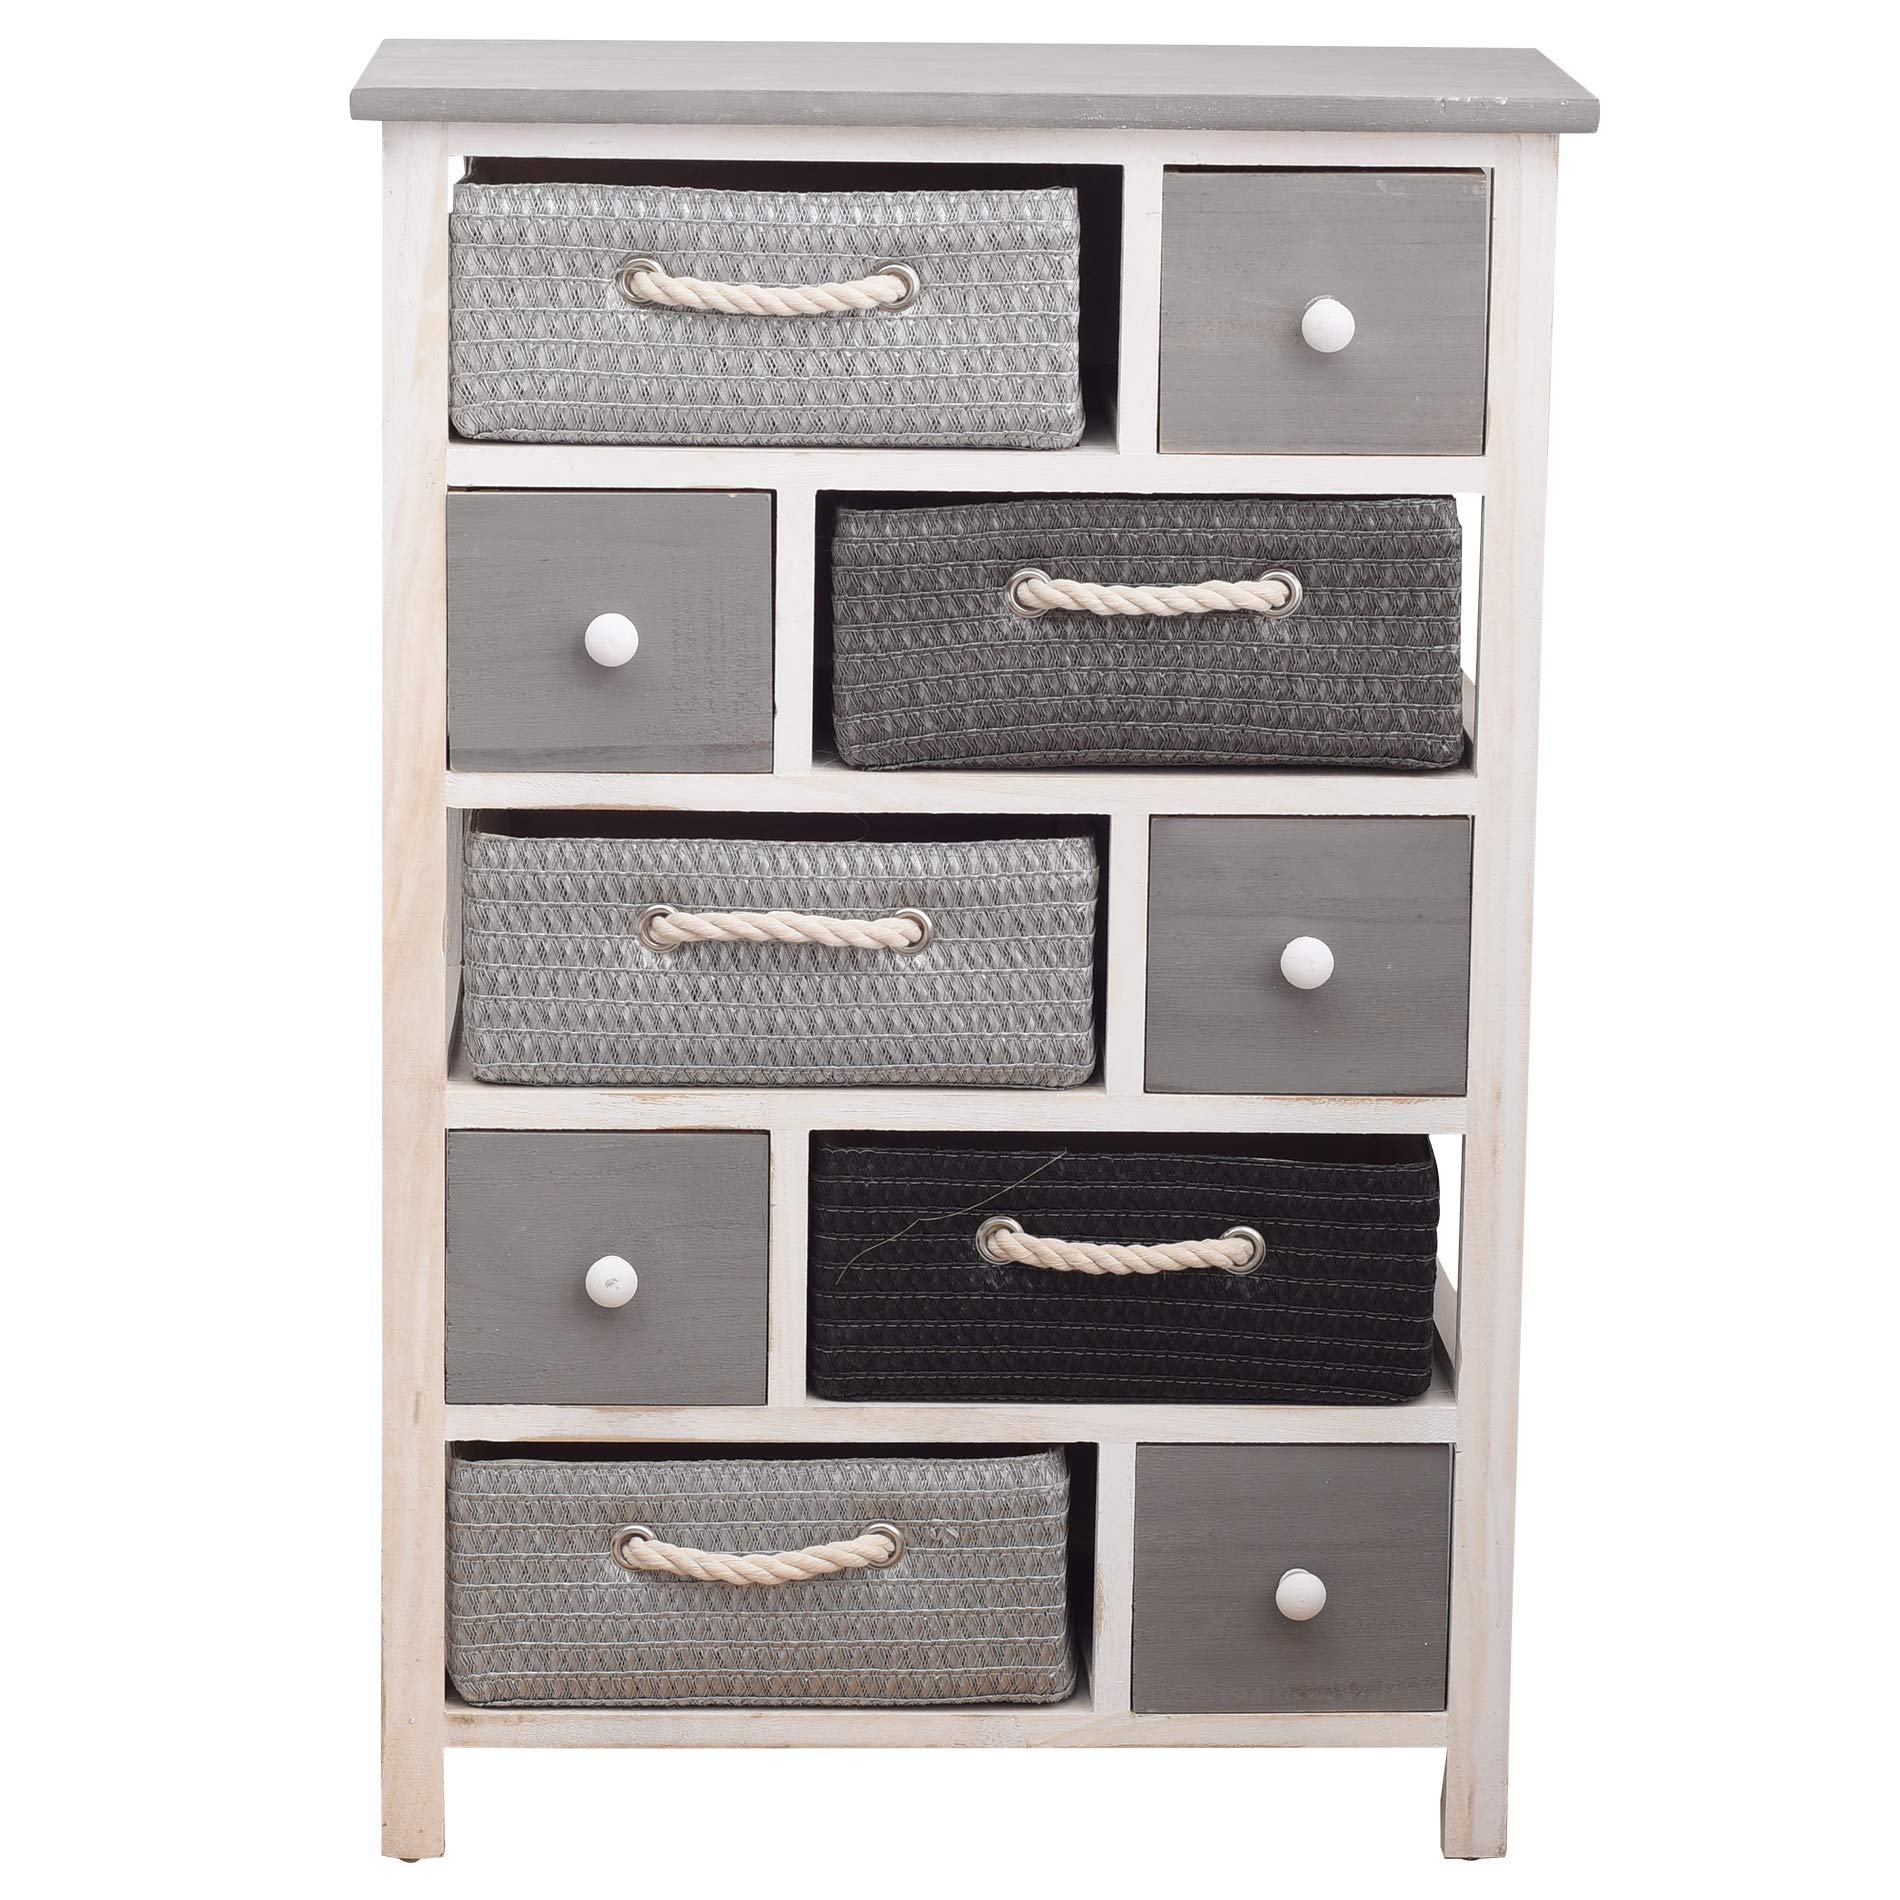 Rebecca Mobili Chest of Drawers Dresser 5 Wood Drawers 5 Wicker Drawers White Grey Urban Sitting Room Hallway - 83 x 56 x 27 cm (H x W x D) - Art. RE4324